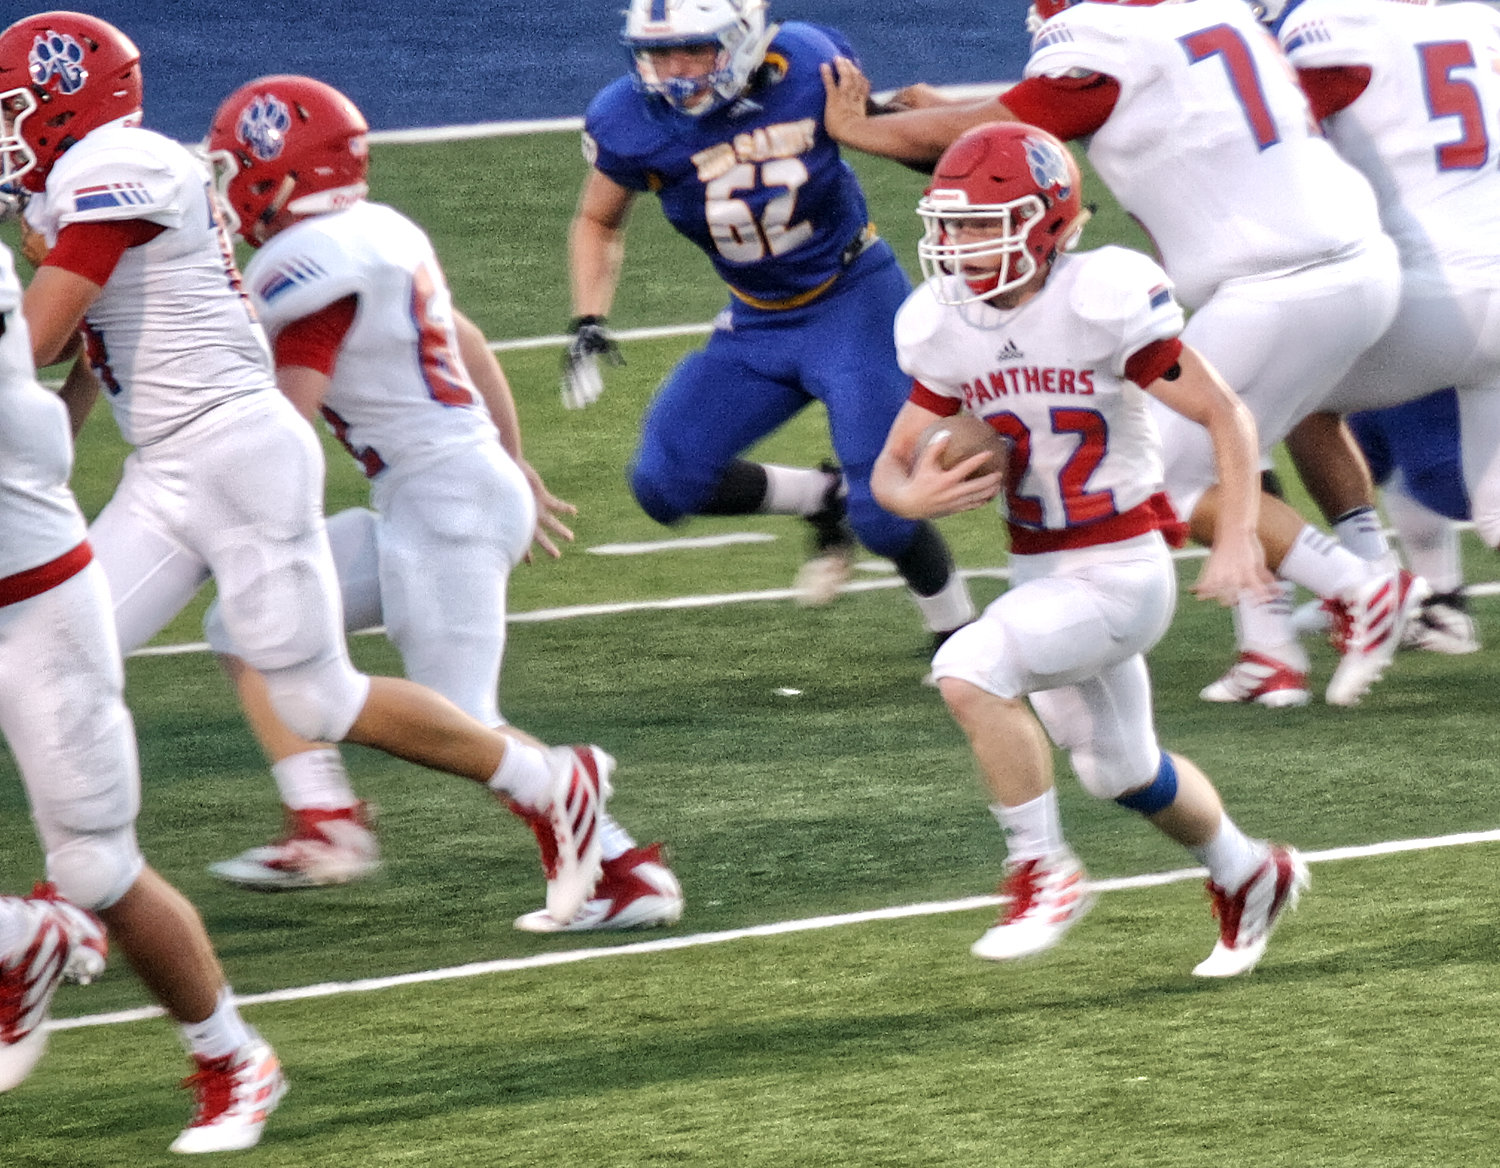 Panther Austin Hartley carries in action against Big Sandy.